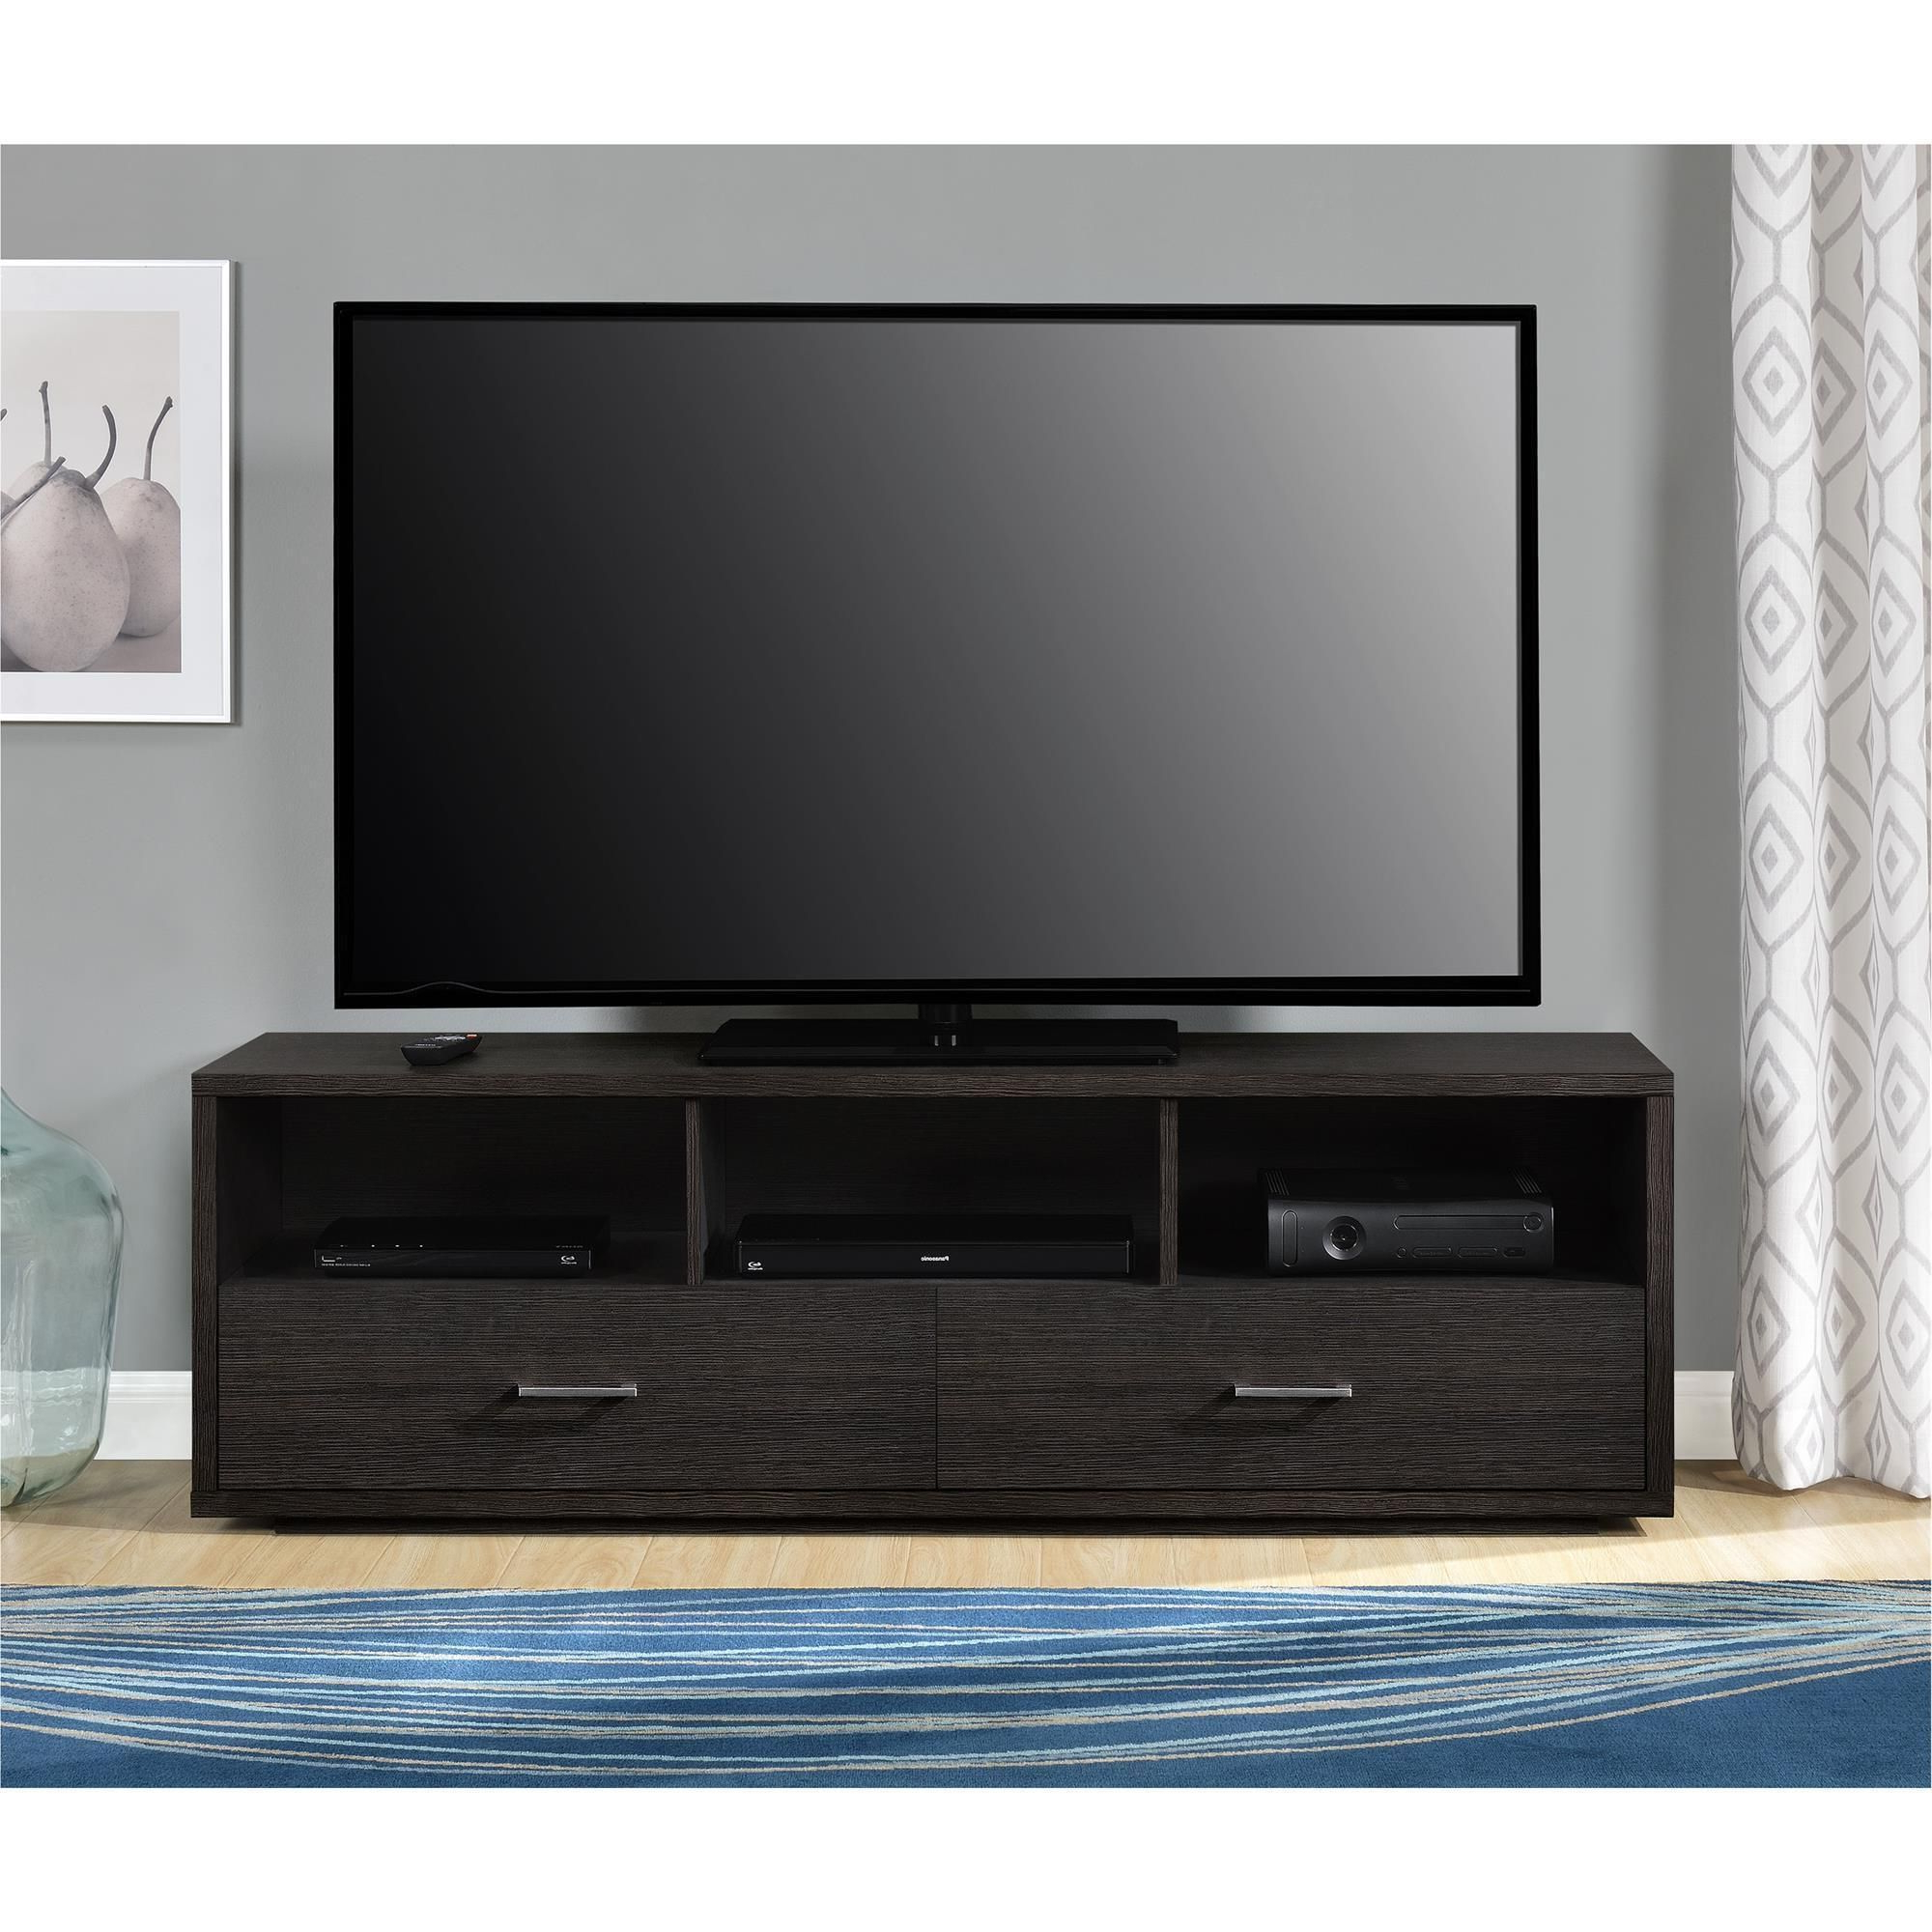 Preferred The Altra Clark 70 Inch Tv Stand Helps To Make A Statement In Your In Tv Stands For 70 Flat Screen (Gallery 19 of 20)